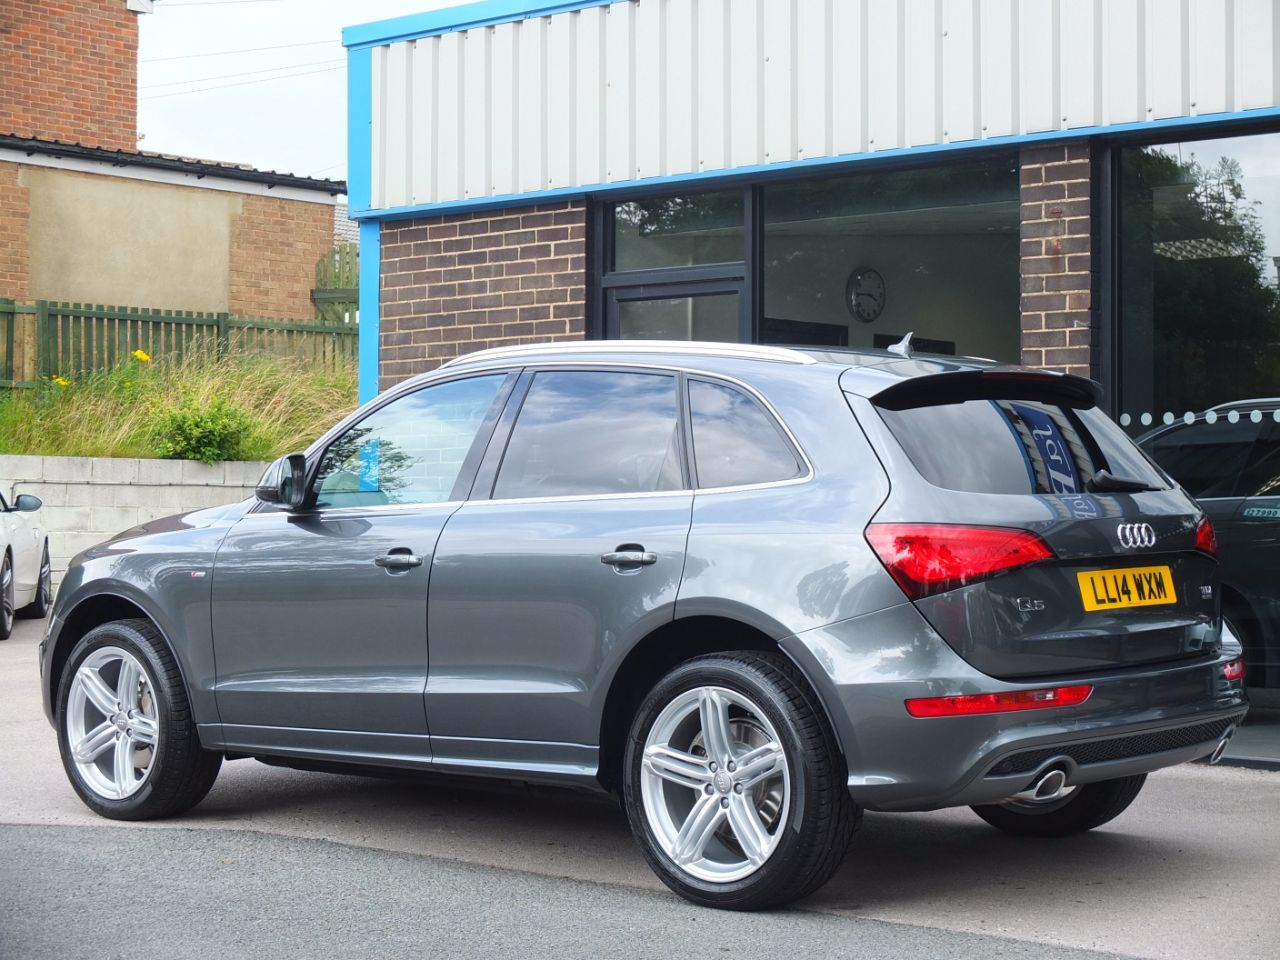 used audi q5 3 0 tdi quattro s line plus s tronic 245ps for sale in bradford west yorkshire. Black Bedroom Furniture Sets. Home Design Ideas